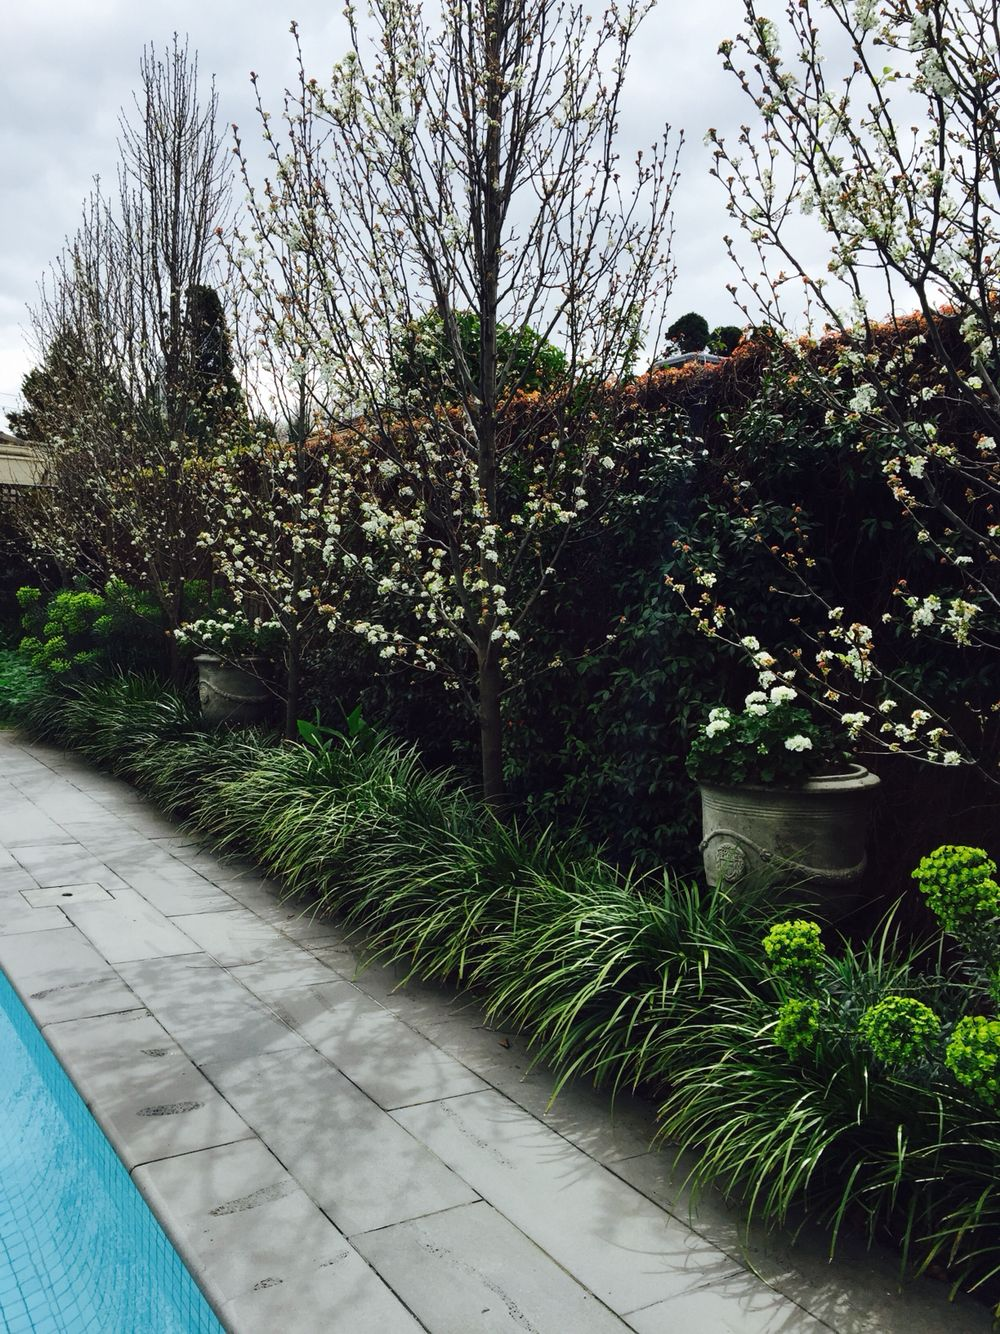 Garden landscape trees  Poolside  with Liriope Border and Pear Trees White Garden  Nadia